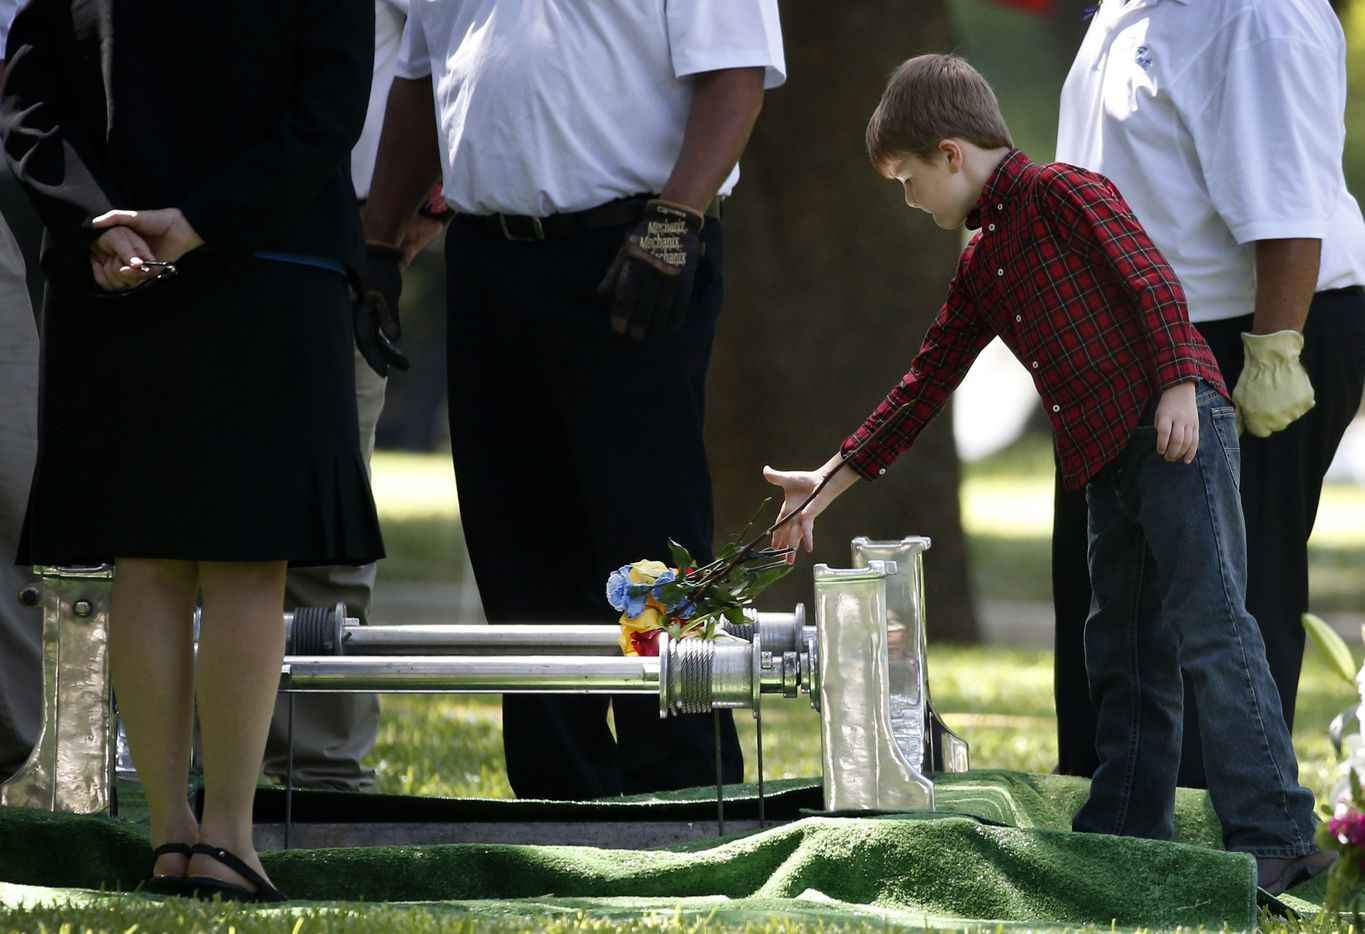 Magnus Ahrens, 8, son of fallen Dallas police officer Lorne Ahrens, drops flowers on his father's grave in the Garden of Honor at Restland Funeral Home and Cemetery in Dallas on July 13, 2016. (Rose Baca/Staff Photographer)